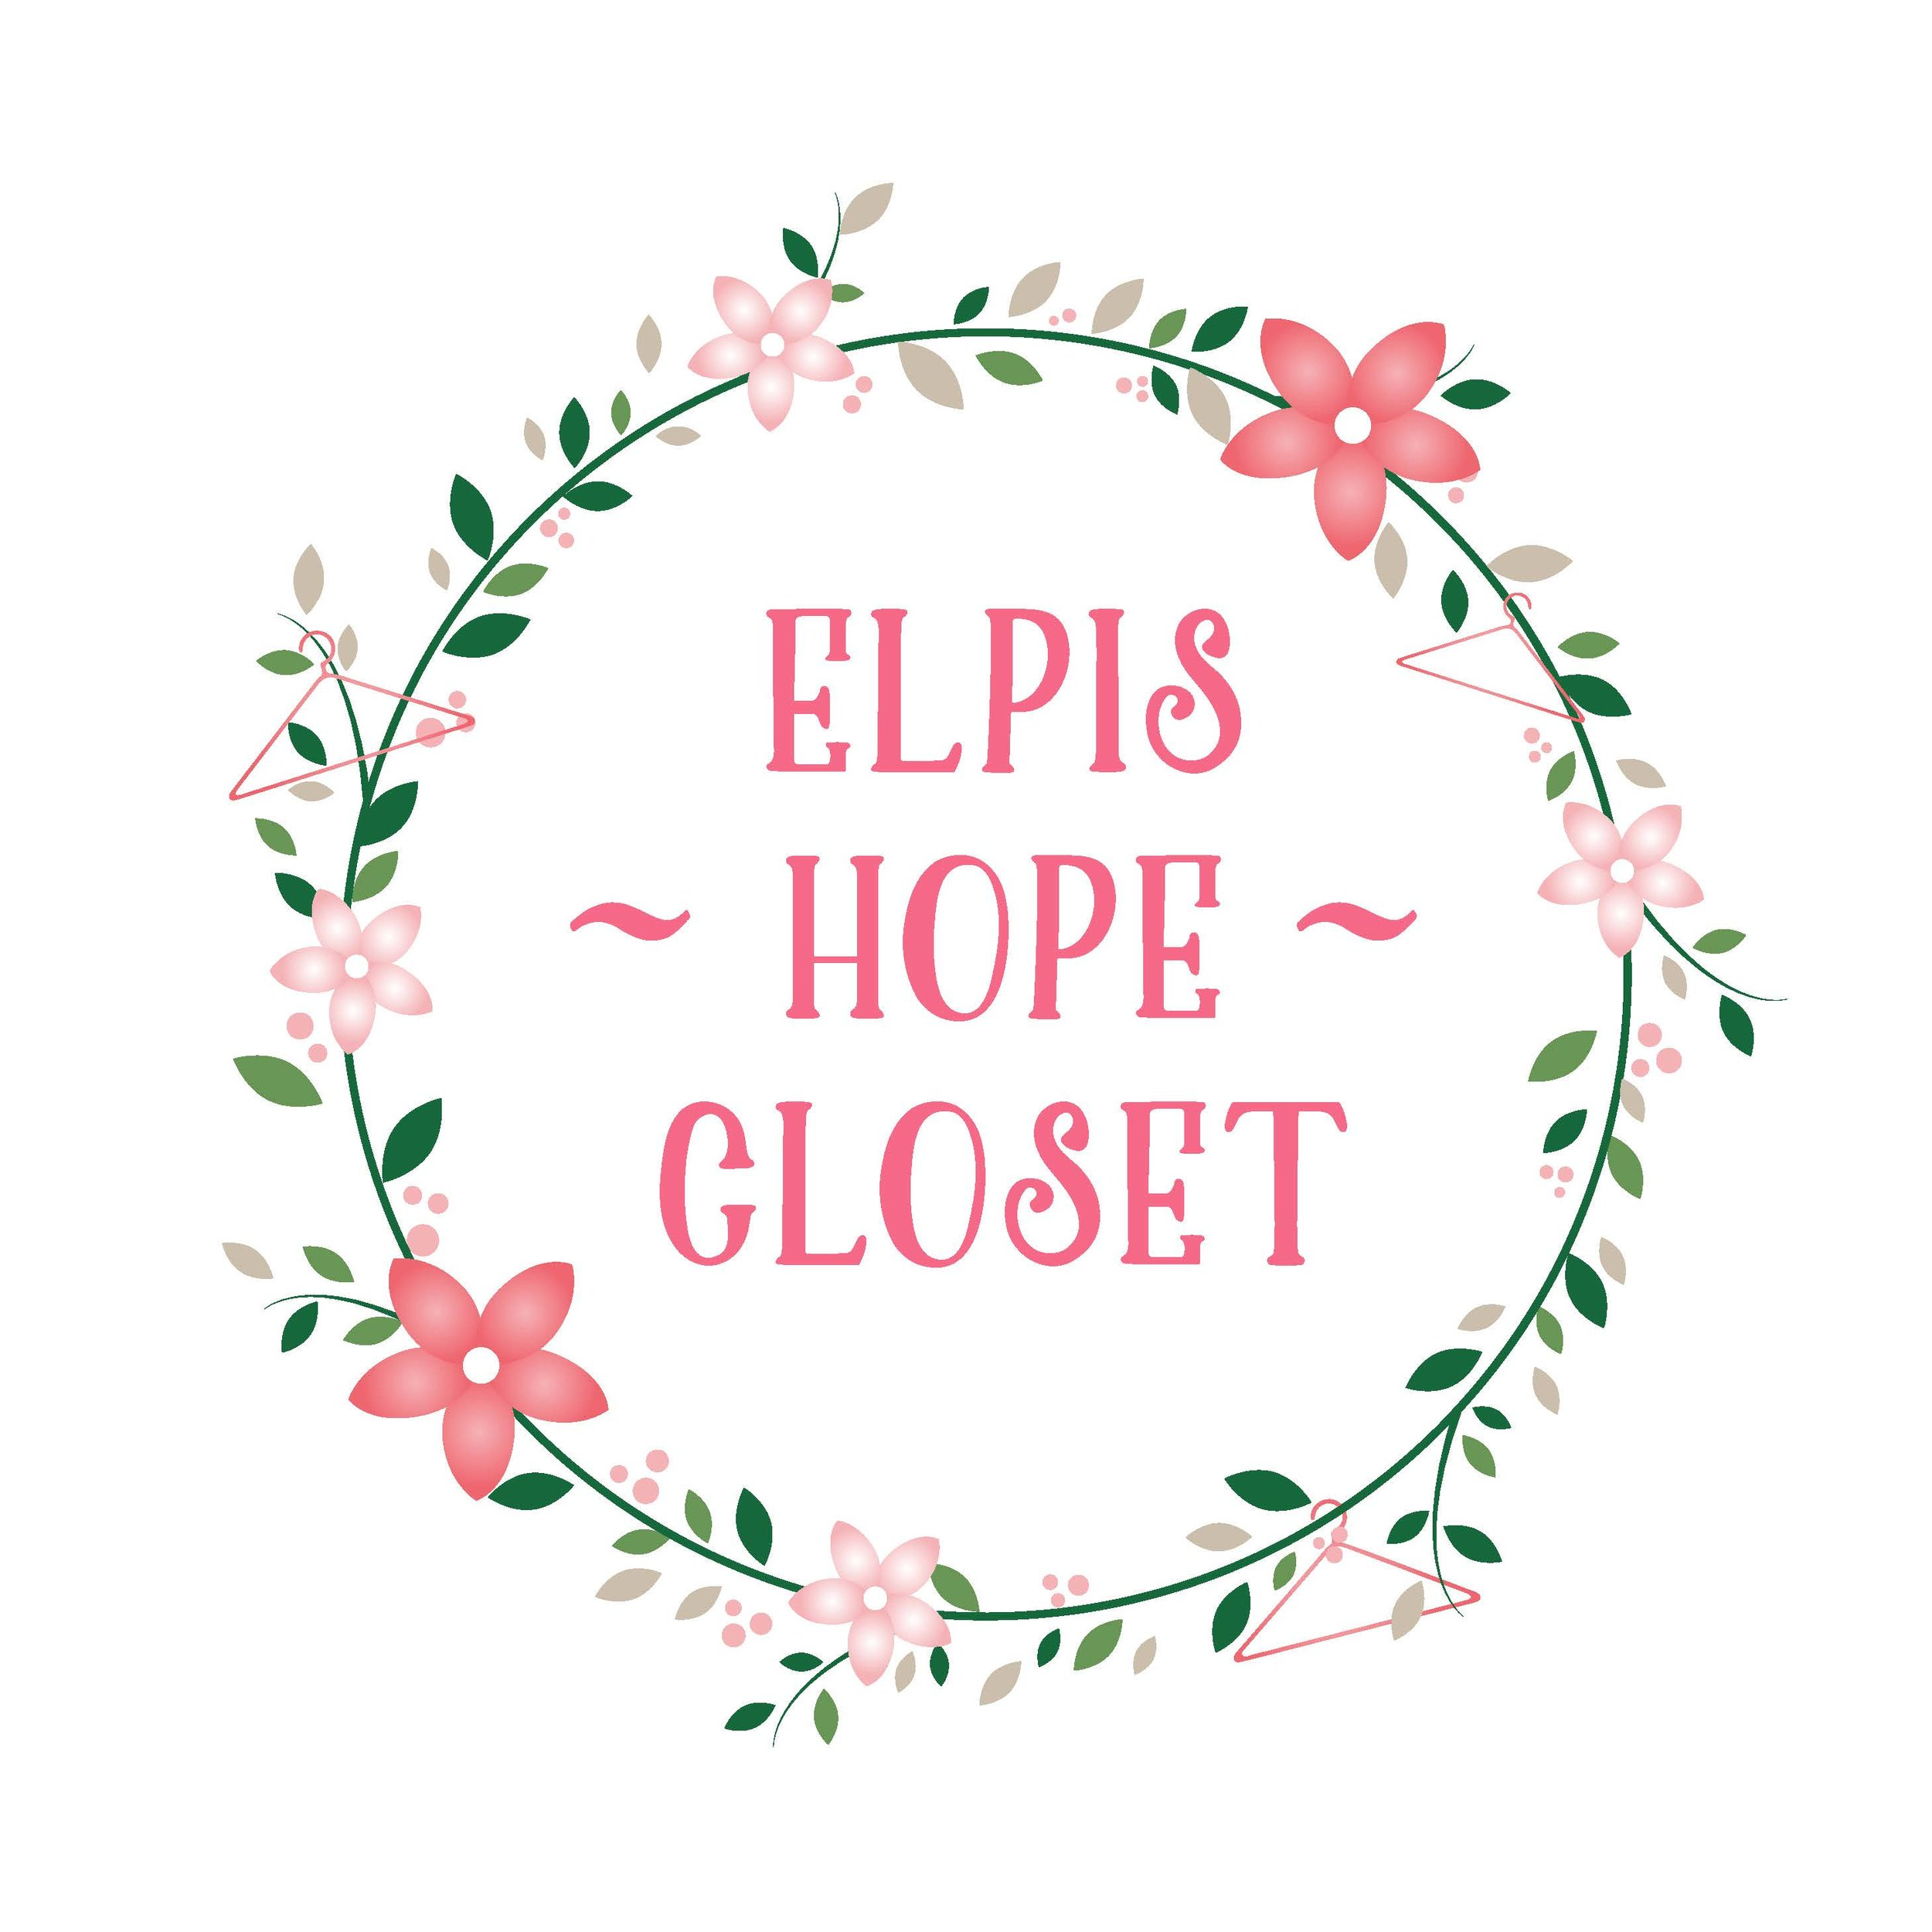 Elpis: Greek (ἐλπίς ) HOPE  Elpis (HOPE) Closet located at La Vintage Pink Door and Elpis Home for Women - provides clothing for New Hope Reentry Program